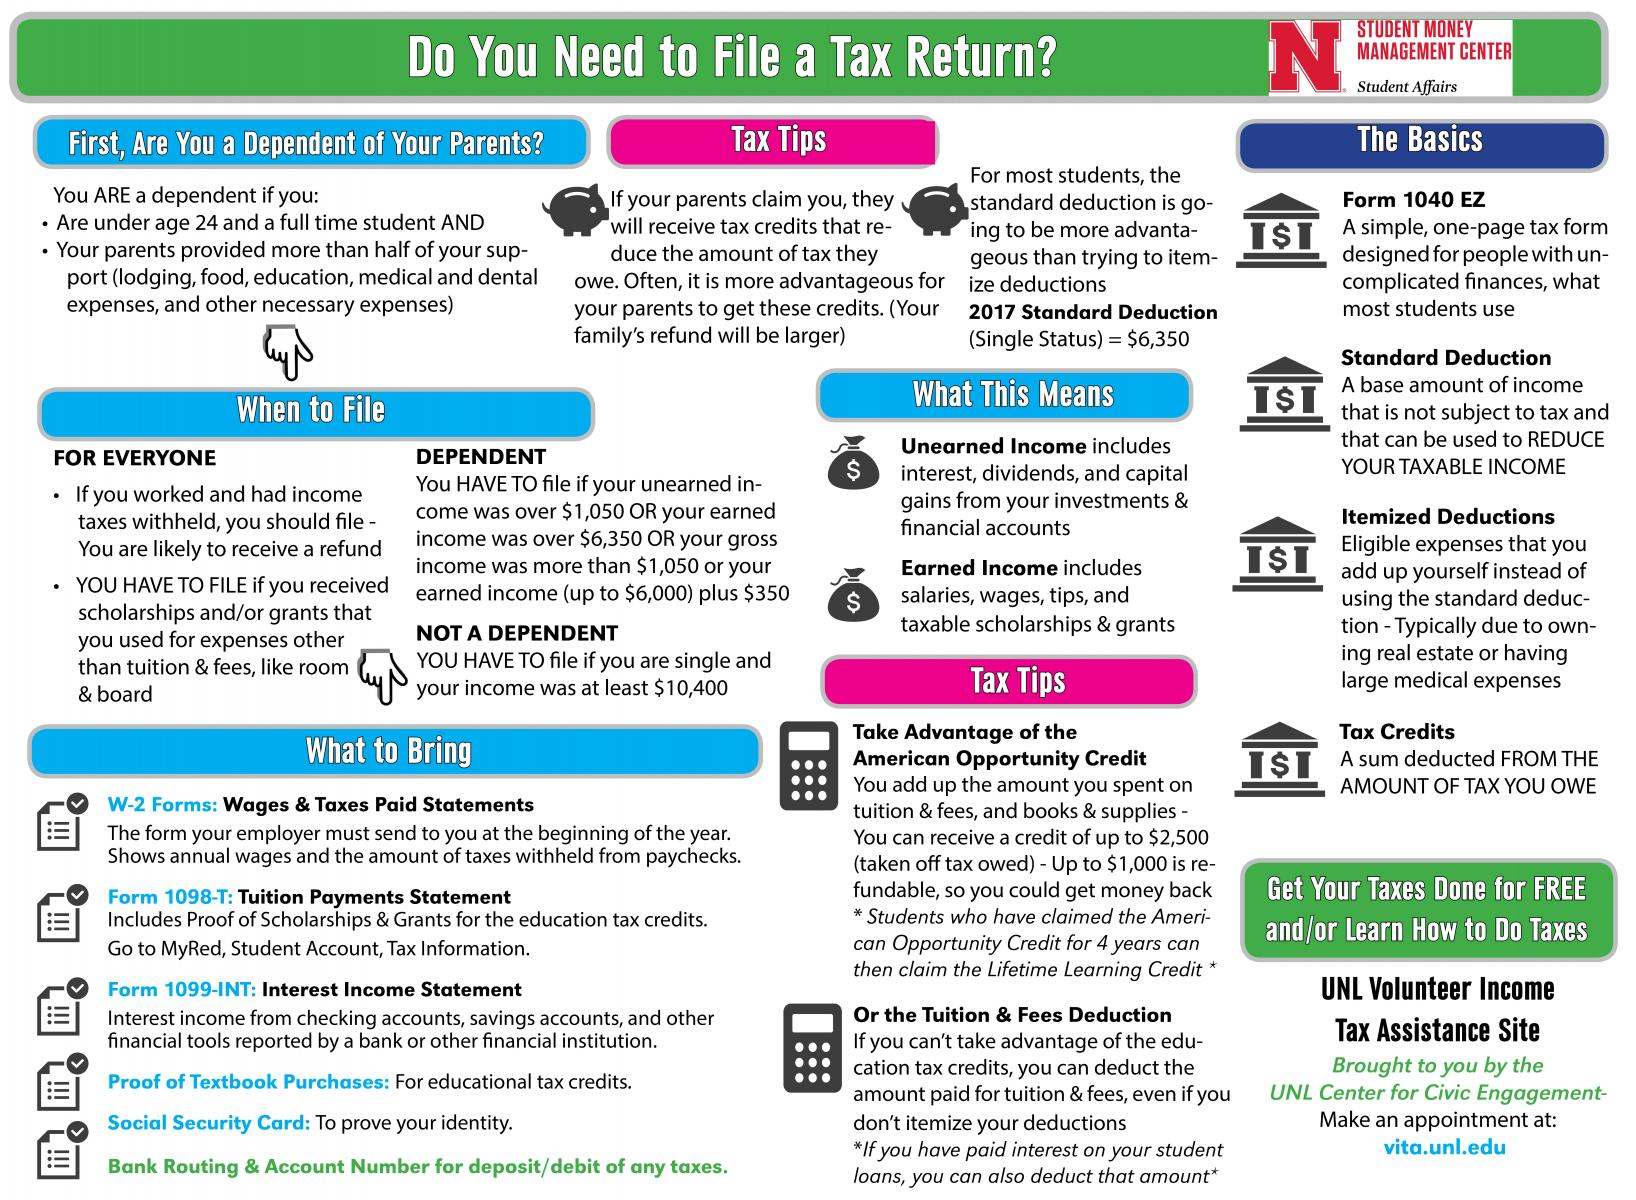 Unl Tax Assistance Student Money Management Center Nebraska